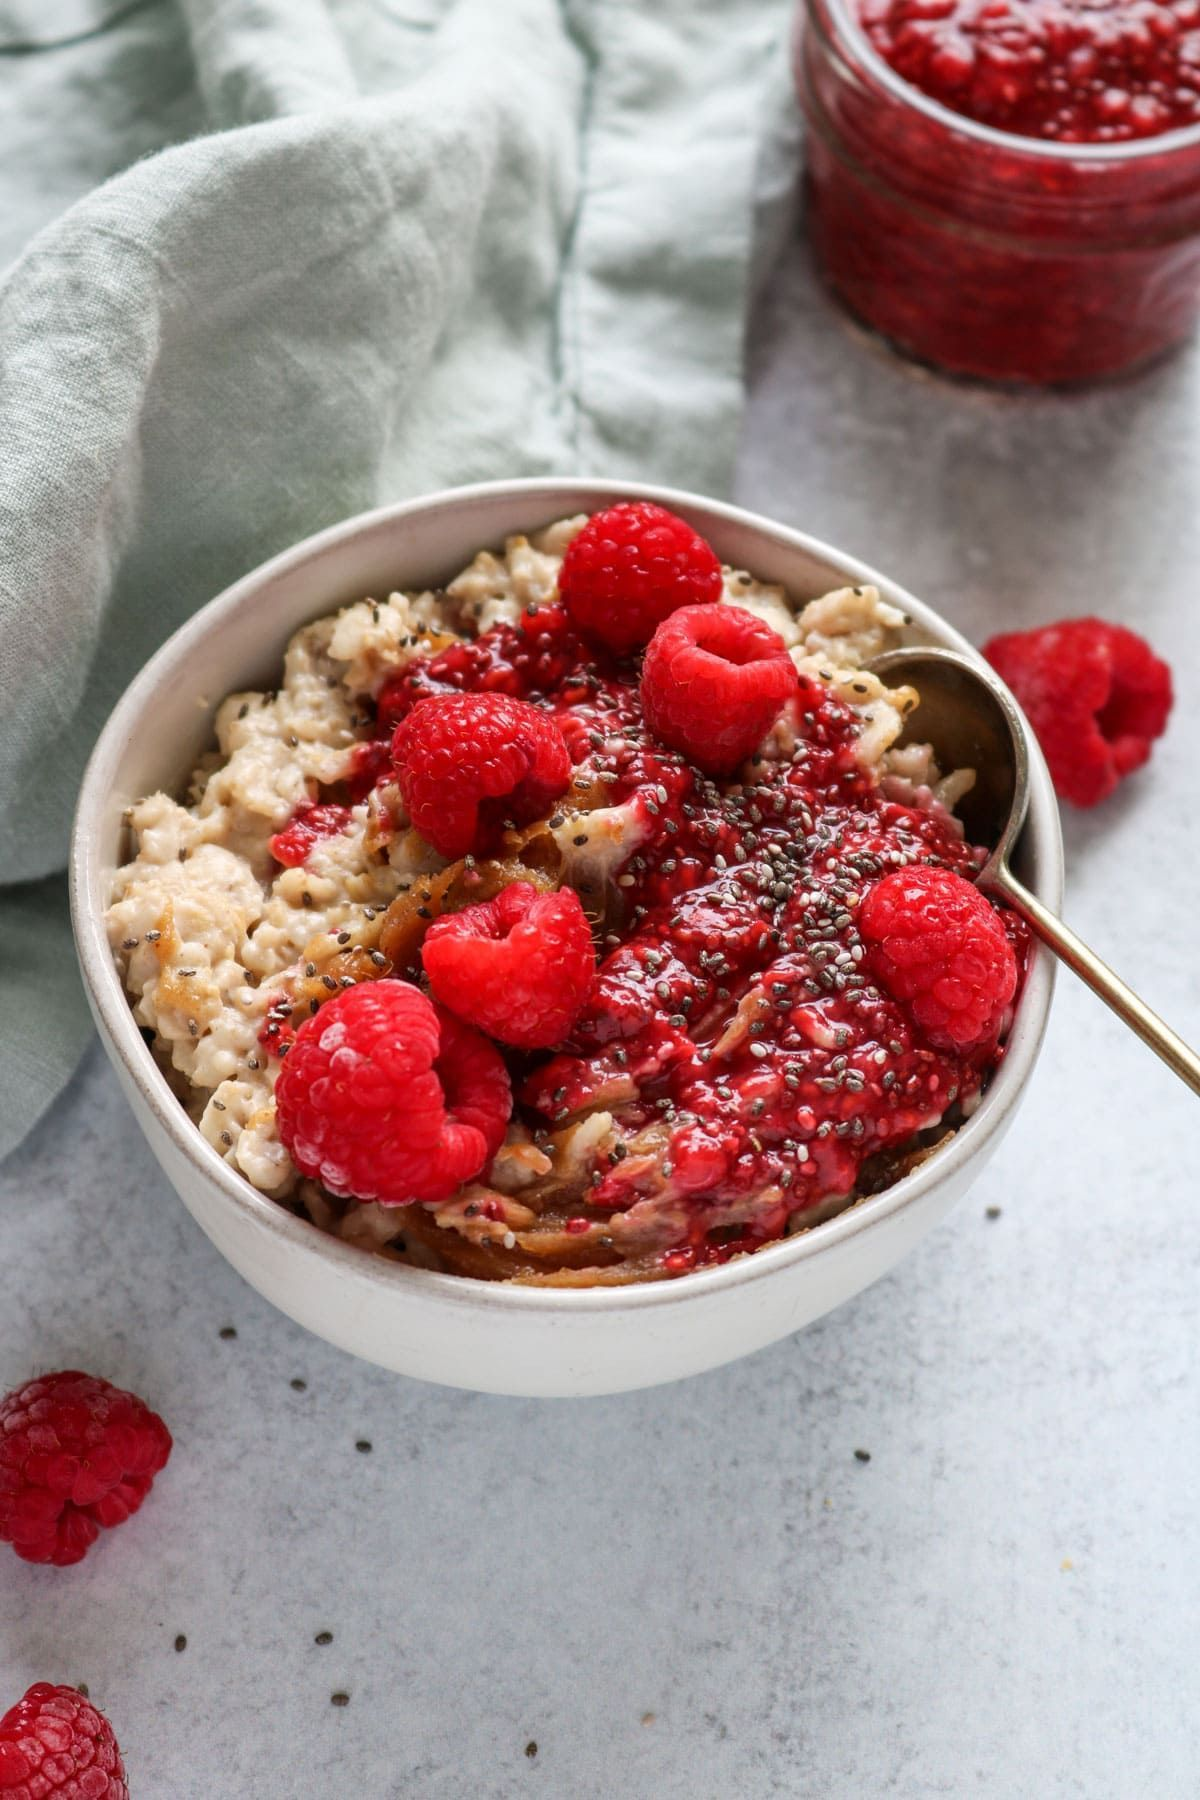 Peanut Butter And Raspberry Chia Jam Vegan Oatmeal Recipe Well Vegan Recipe In 2020 Vegan Oatmeal Oatmeal Recipes Chia Jam